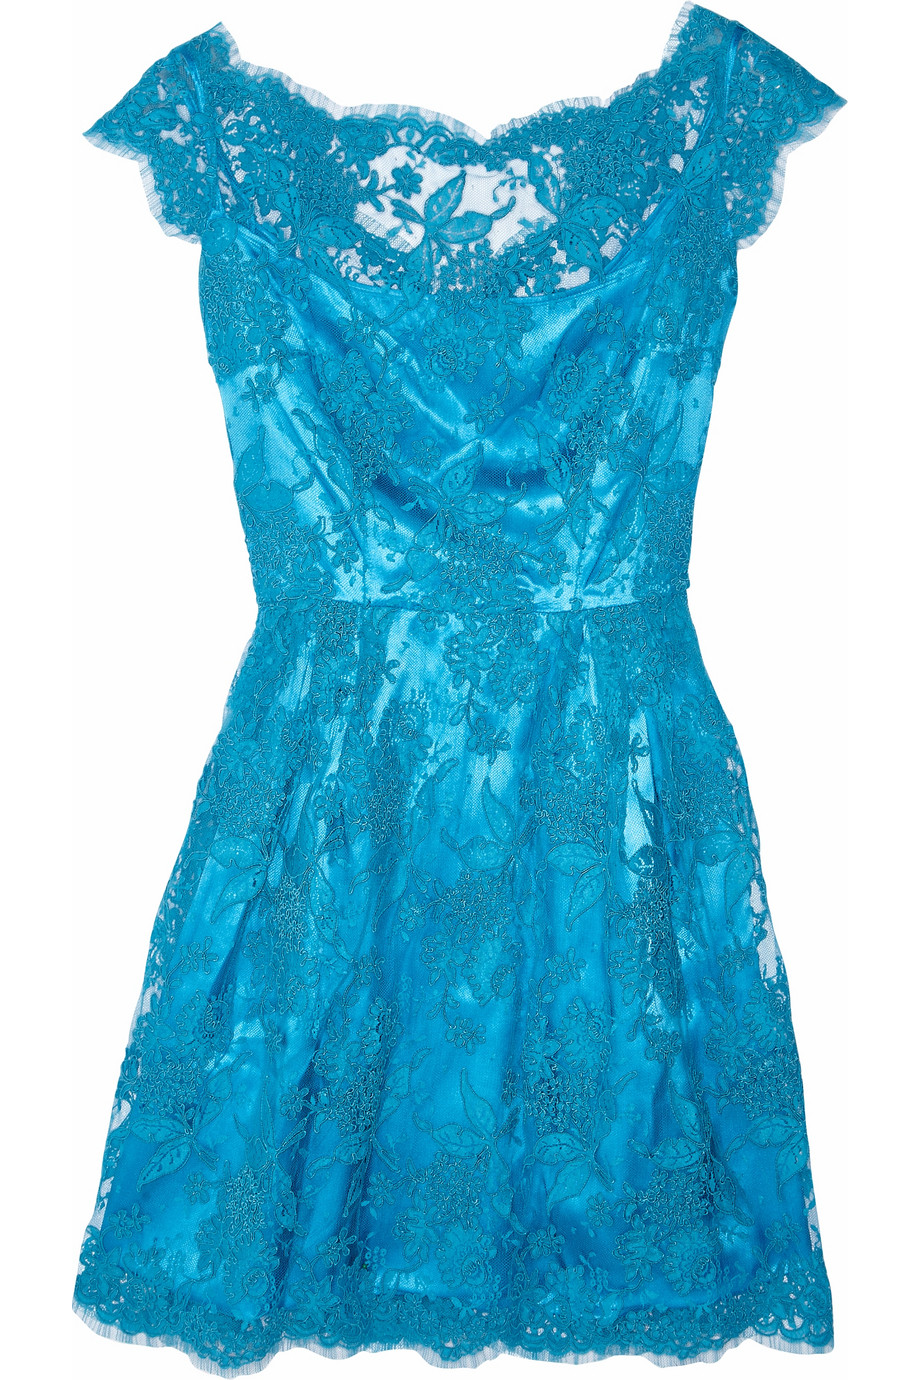 Issa Silk Satin And Lace Dress In Turquoise Blue Lyst